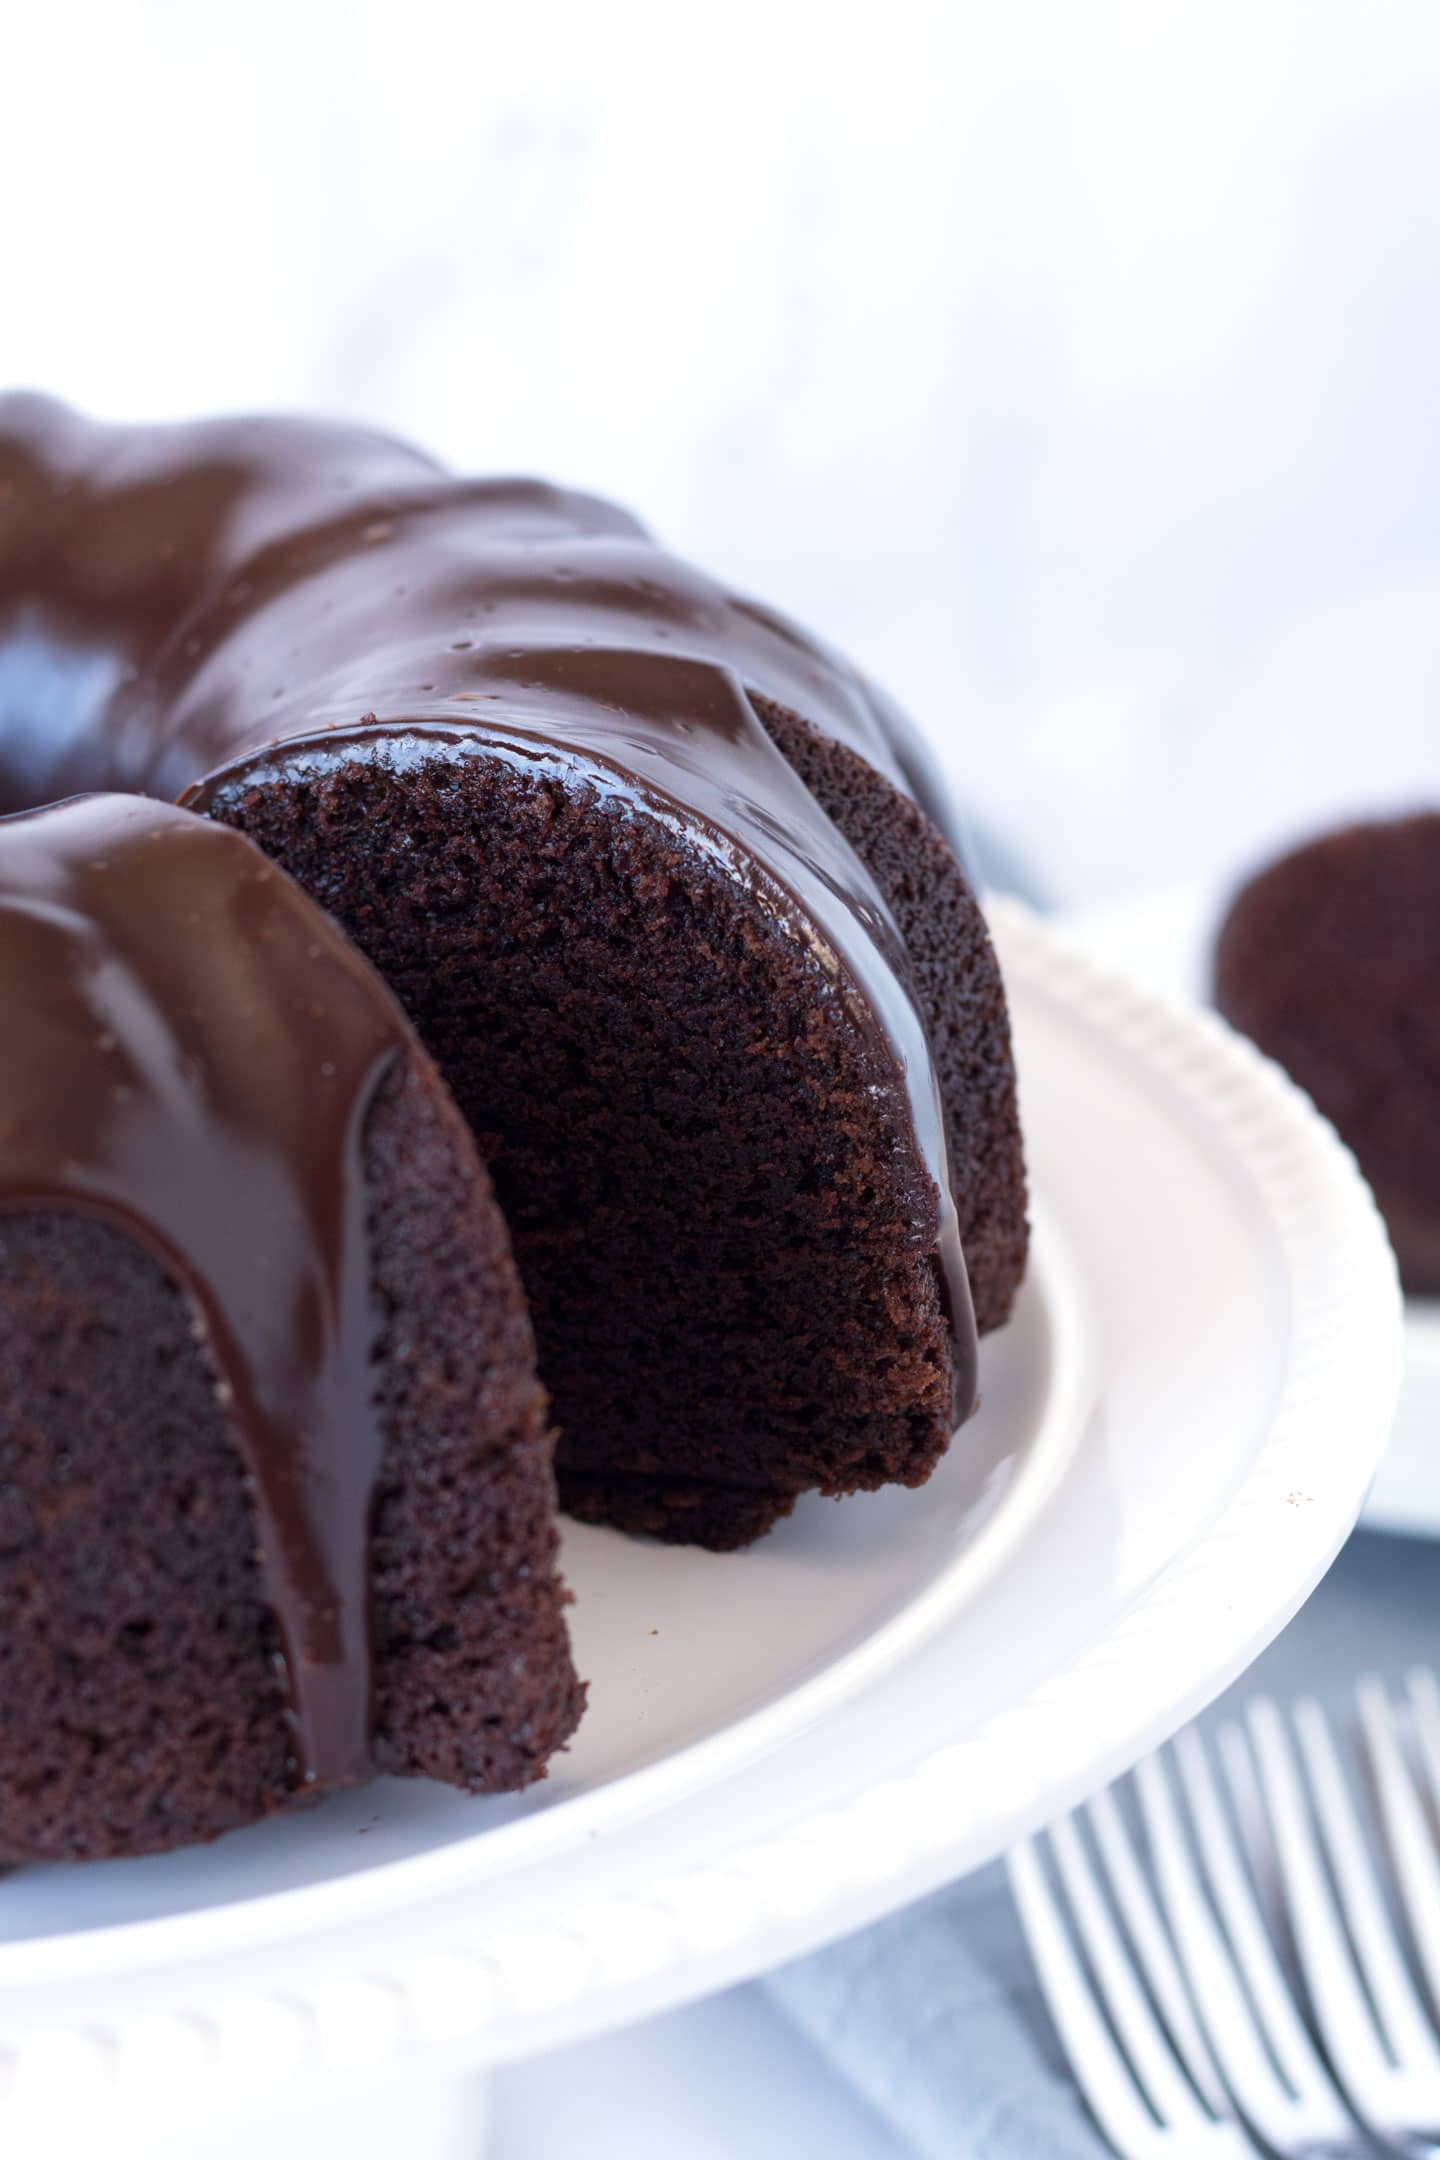 Chocolate bundt cake with slice cut out